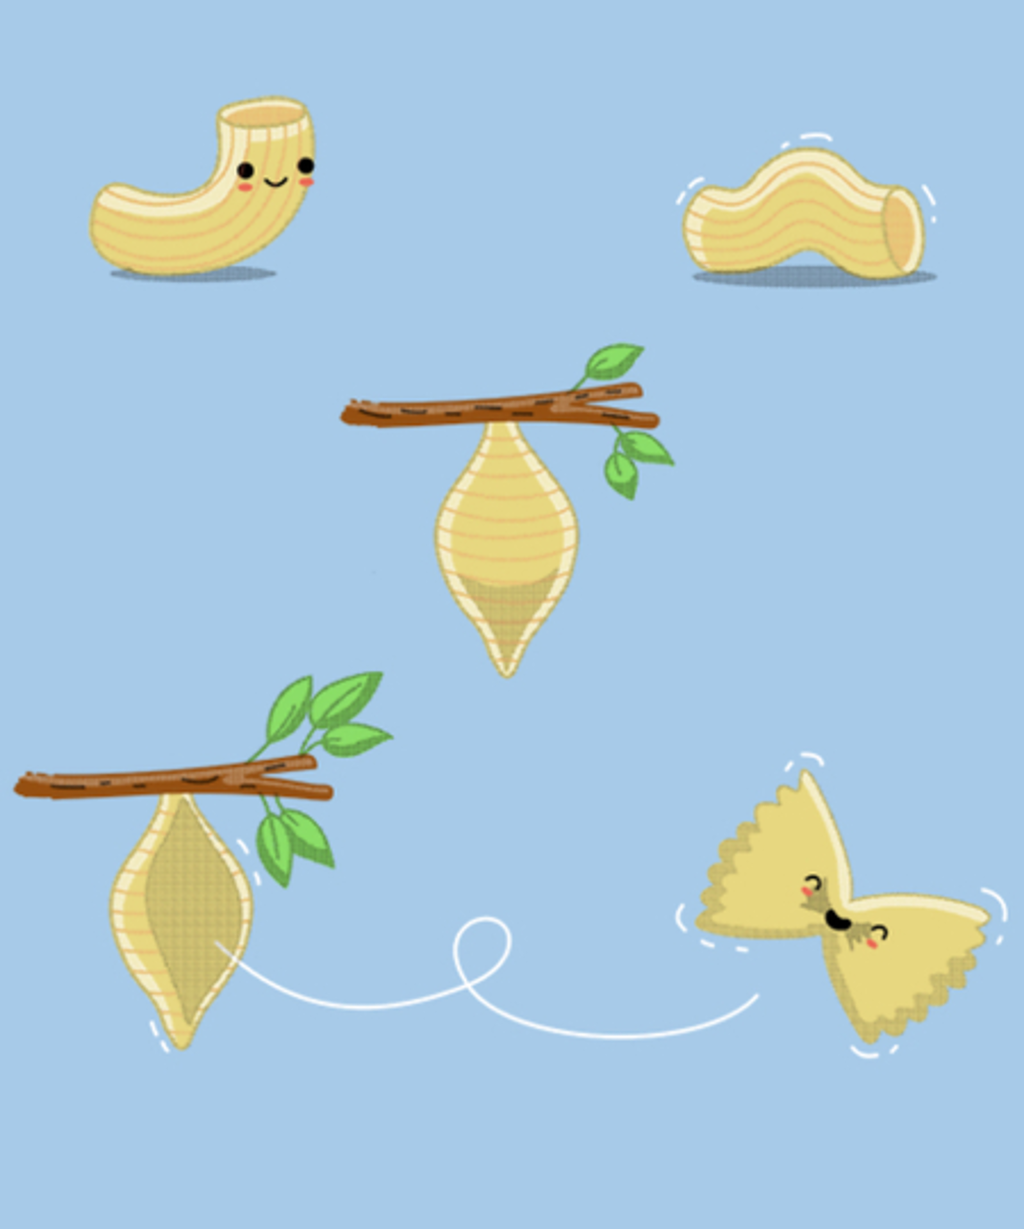 Qwertee: Lifecycle of Pasta